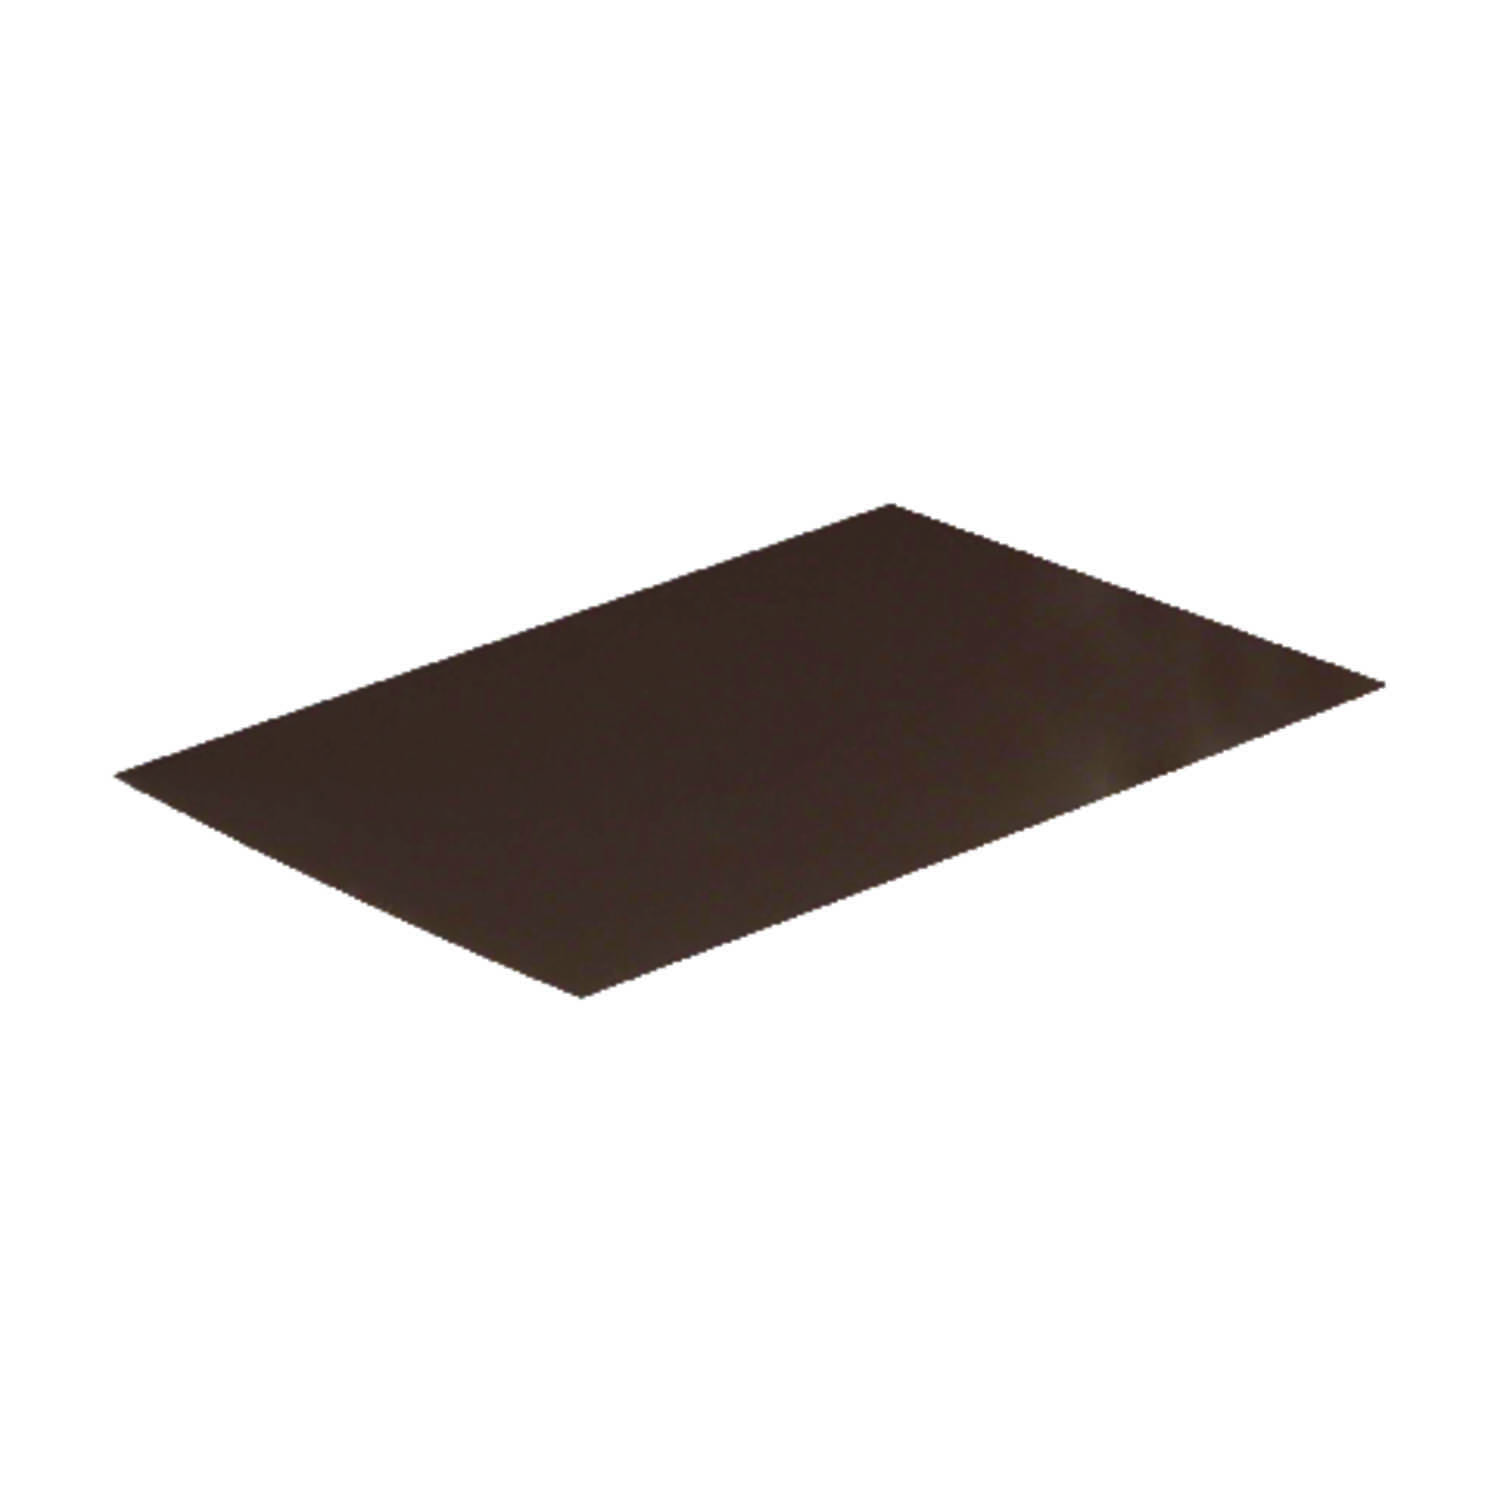 Amerimax  5 in. H x 5 in. W x 7 ft. L Brown  Aluminum  Rectangle  Step Flashing Shingle